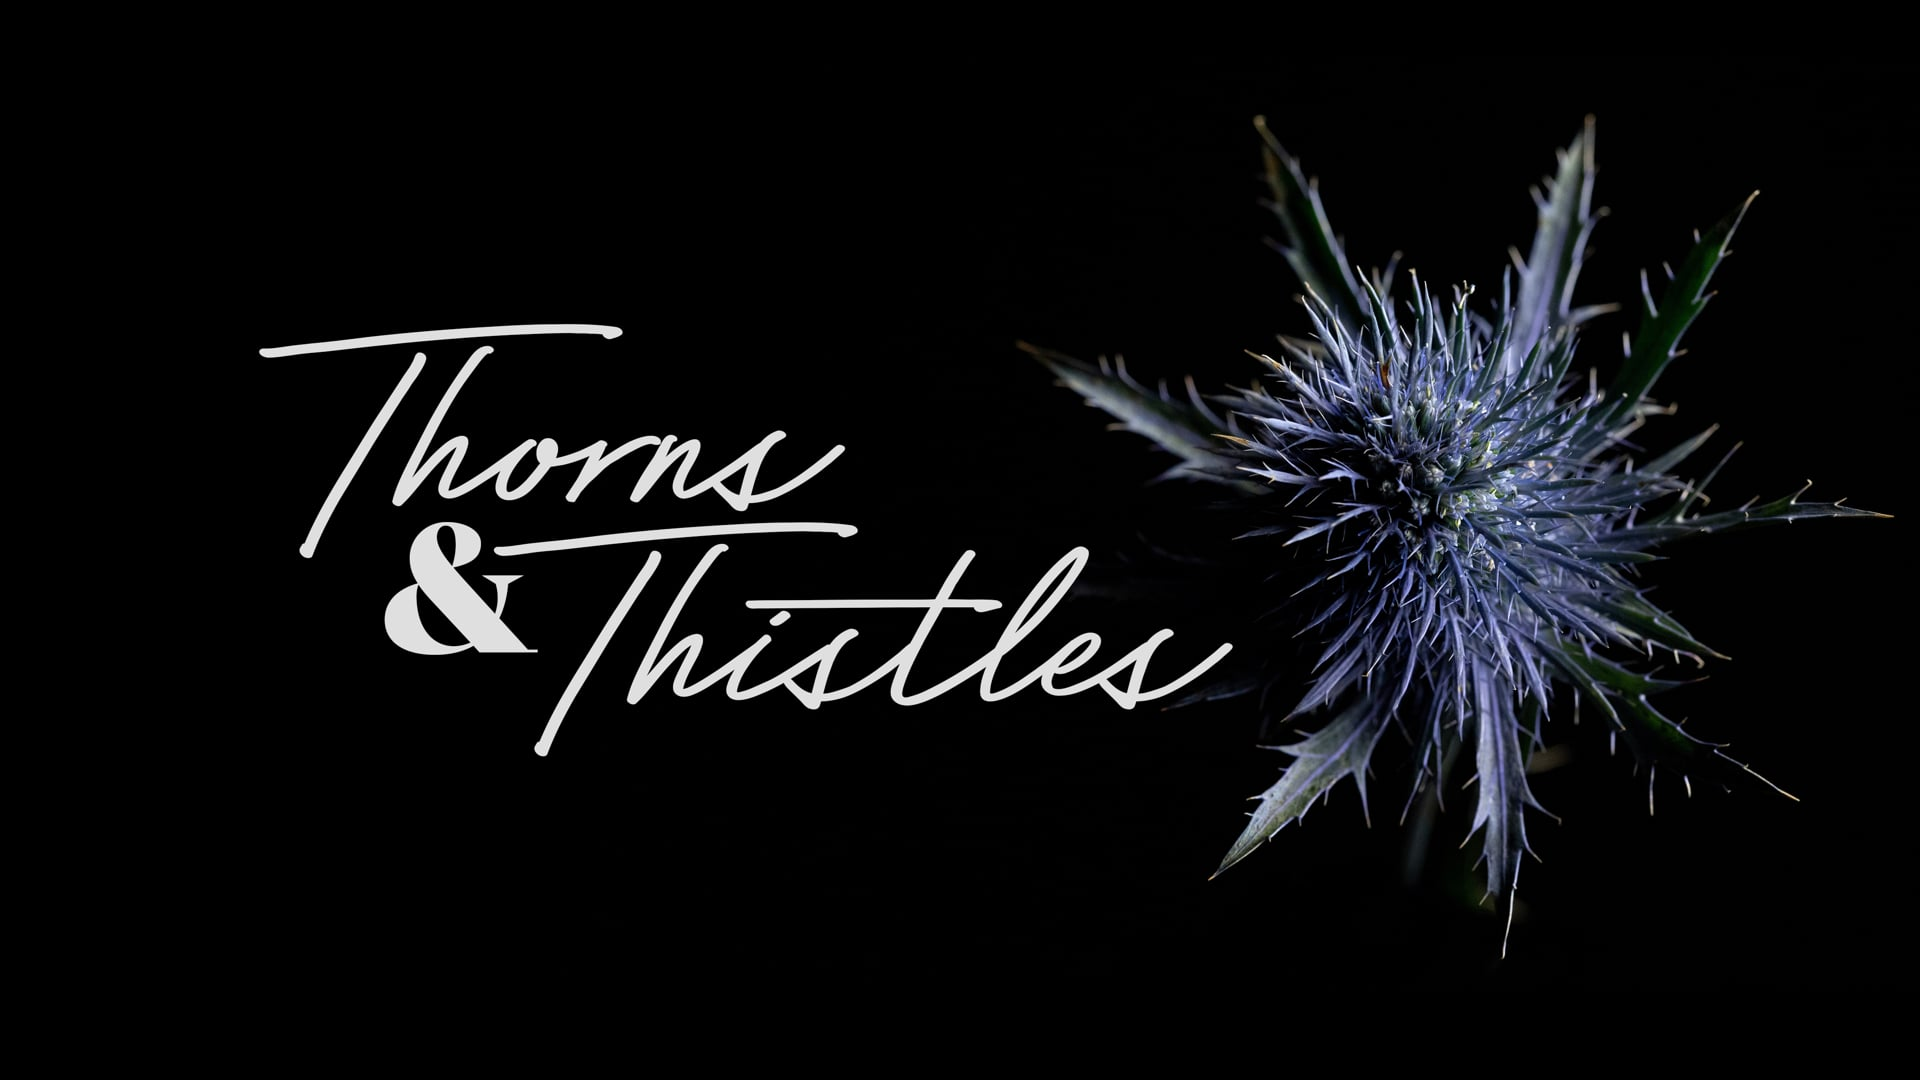 Thorns and Thistles